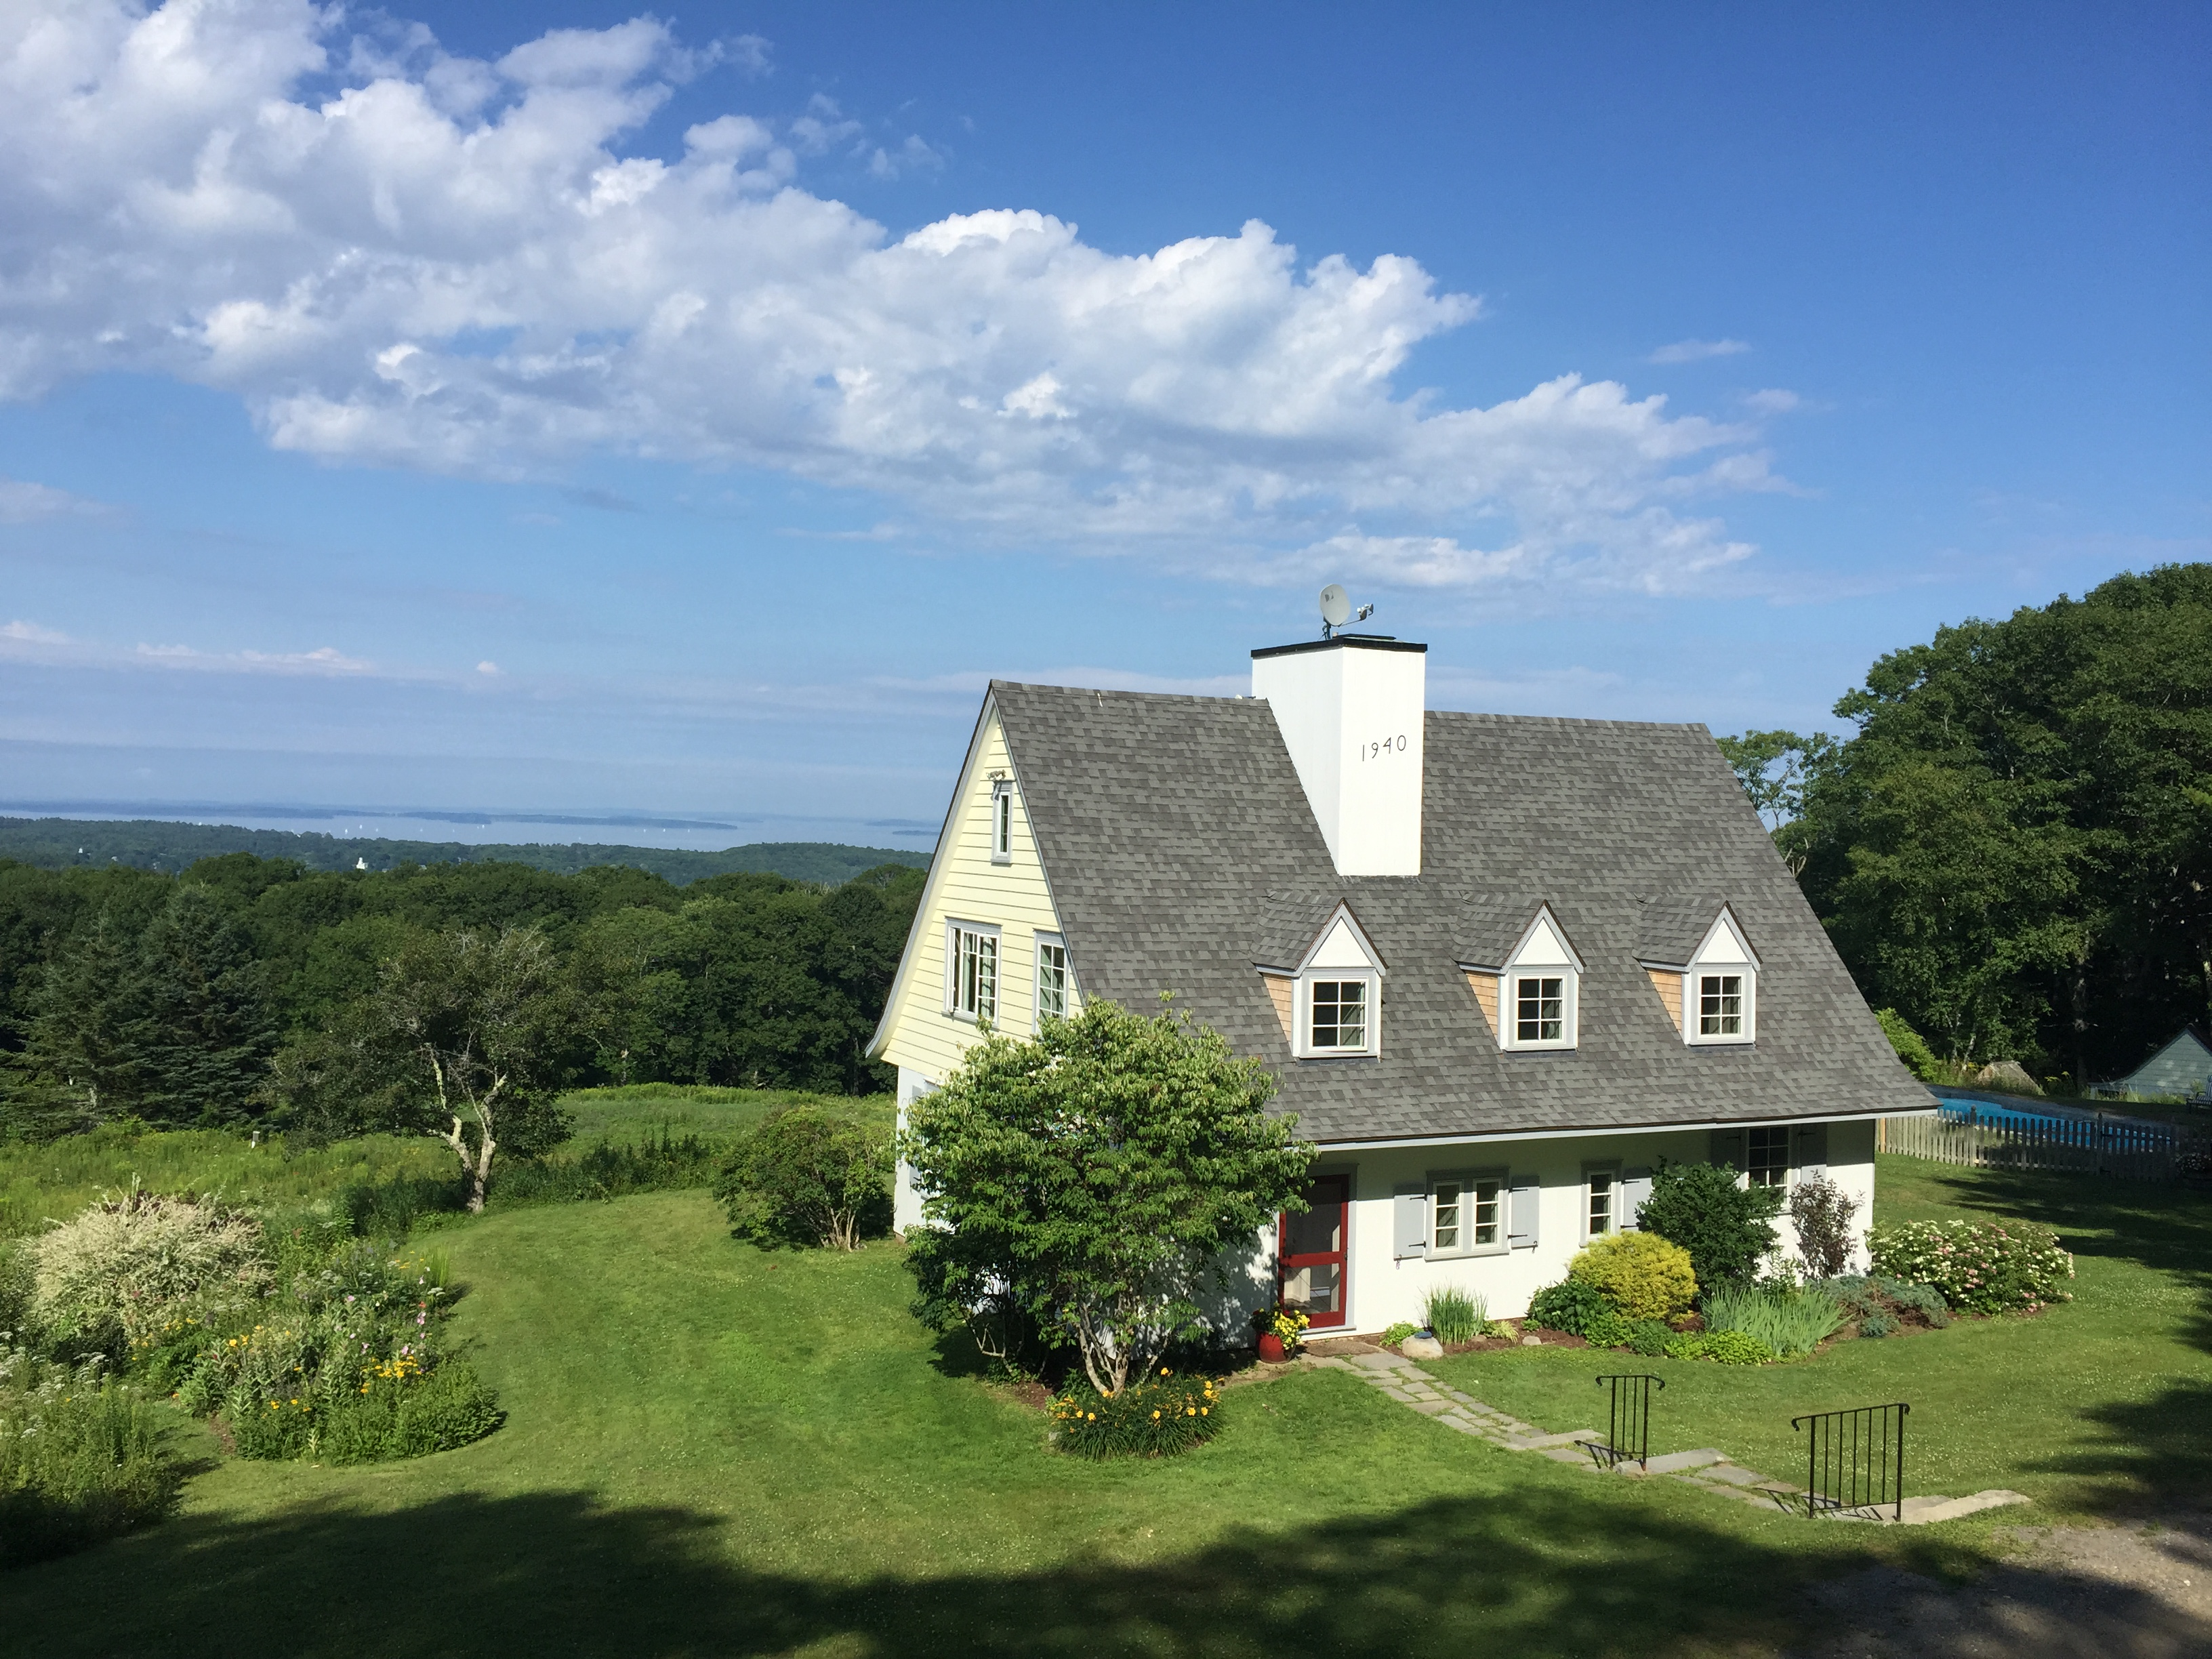 Single Family Home for Sale at Cricket Lane 20 Cricket Lane Rockport, Maine 04856 United States